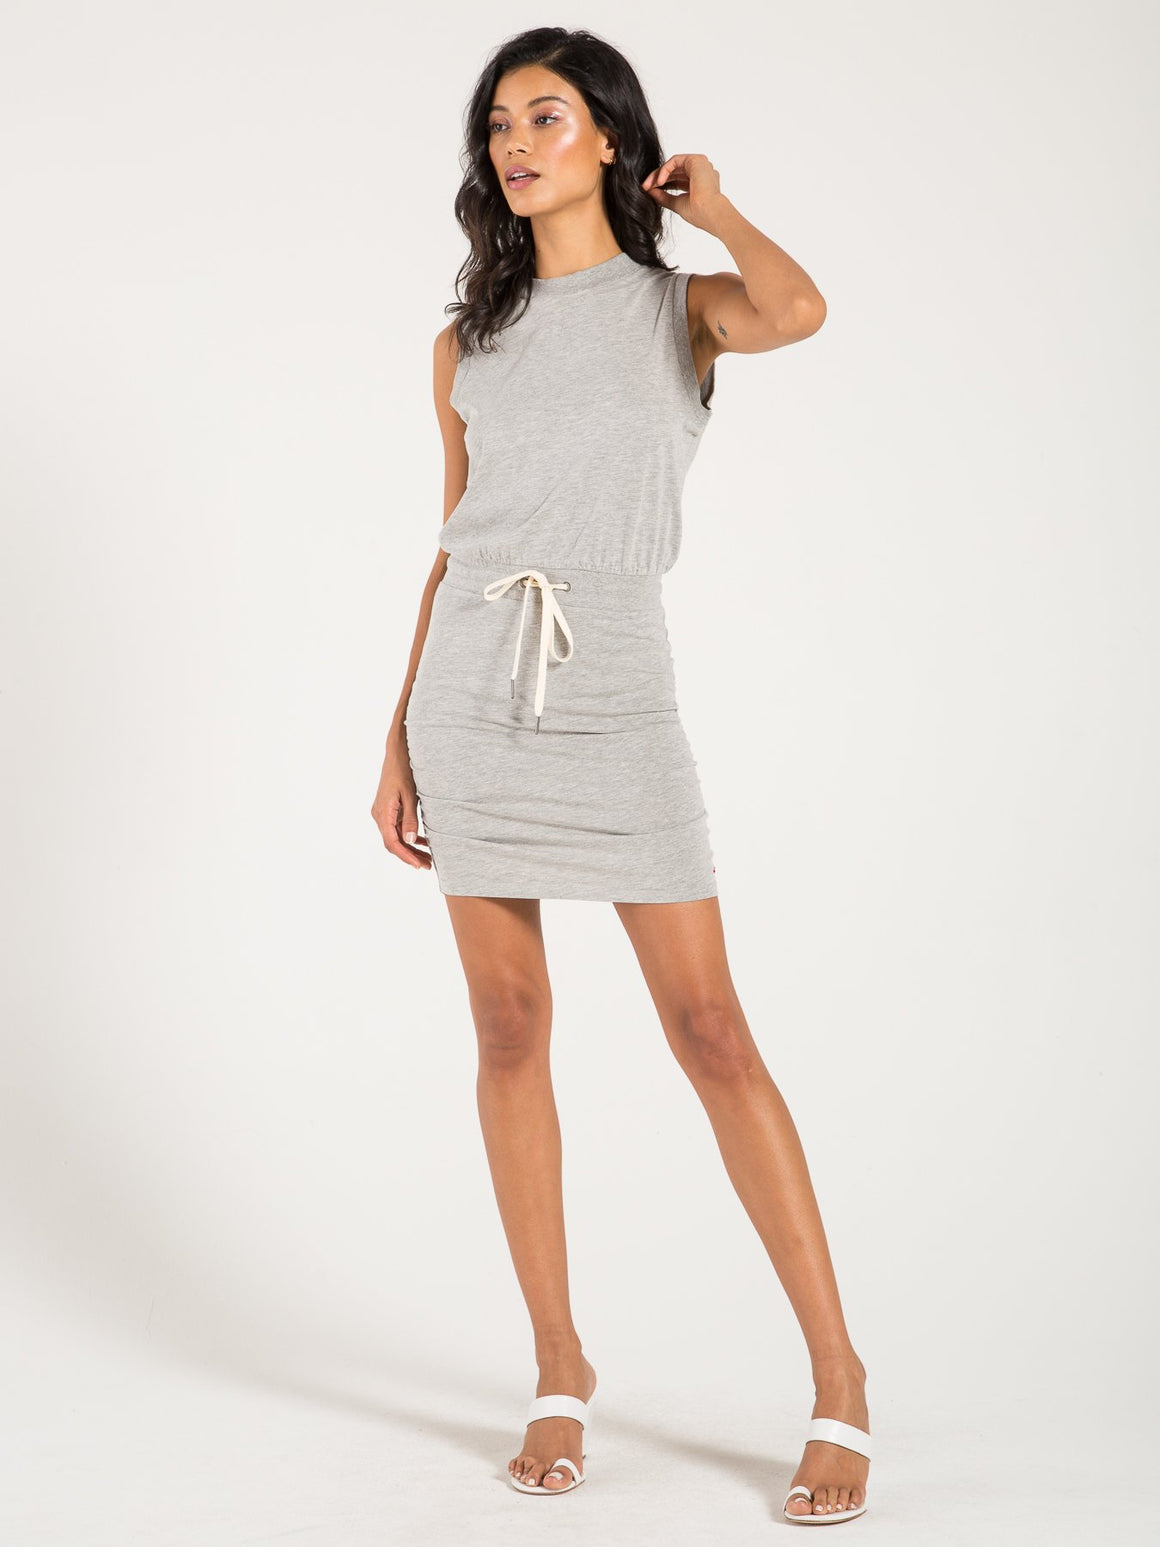 Gazer Dress - Heather Grey